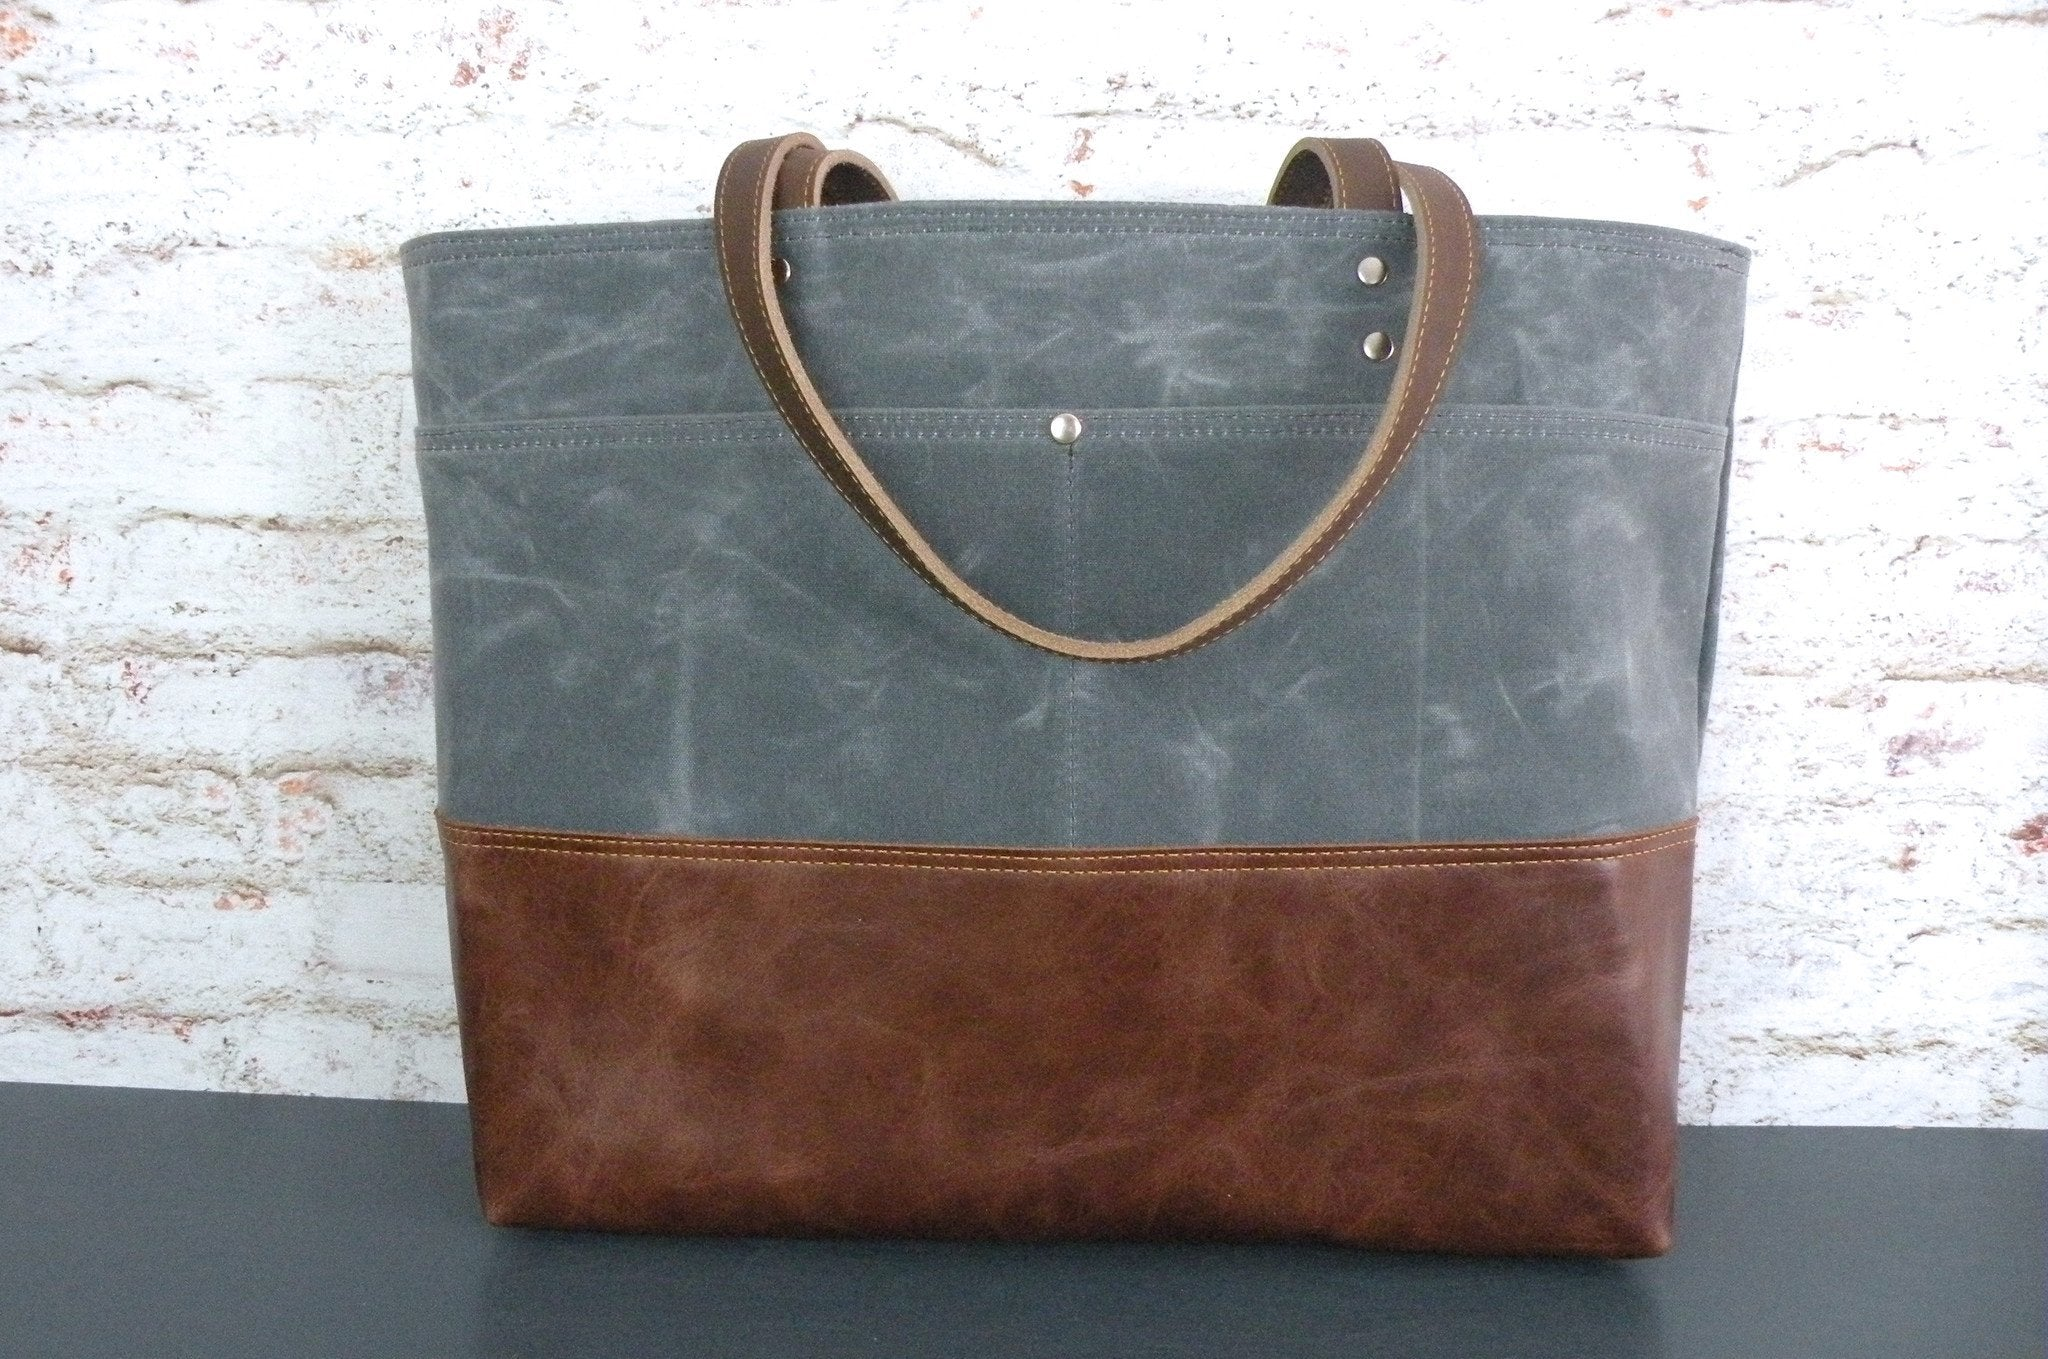 Carryall Tote in Charcoal Grey Waxed Canvas